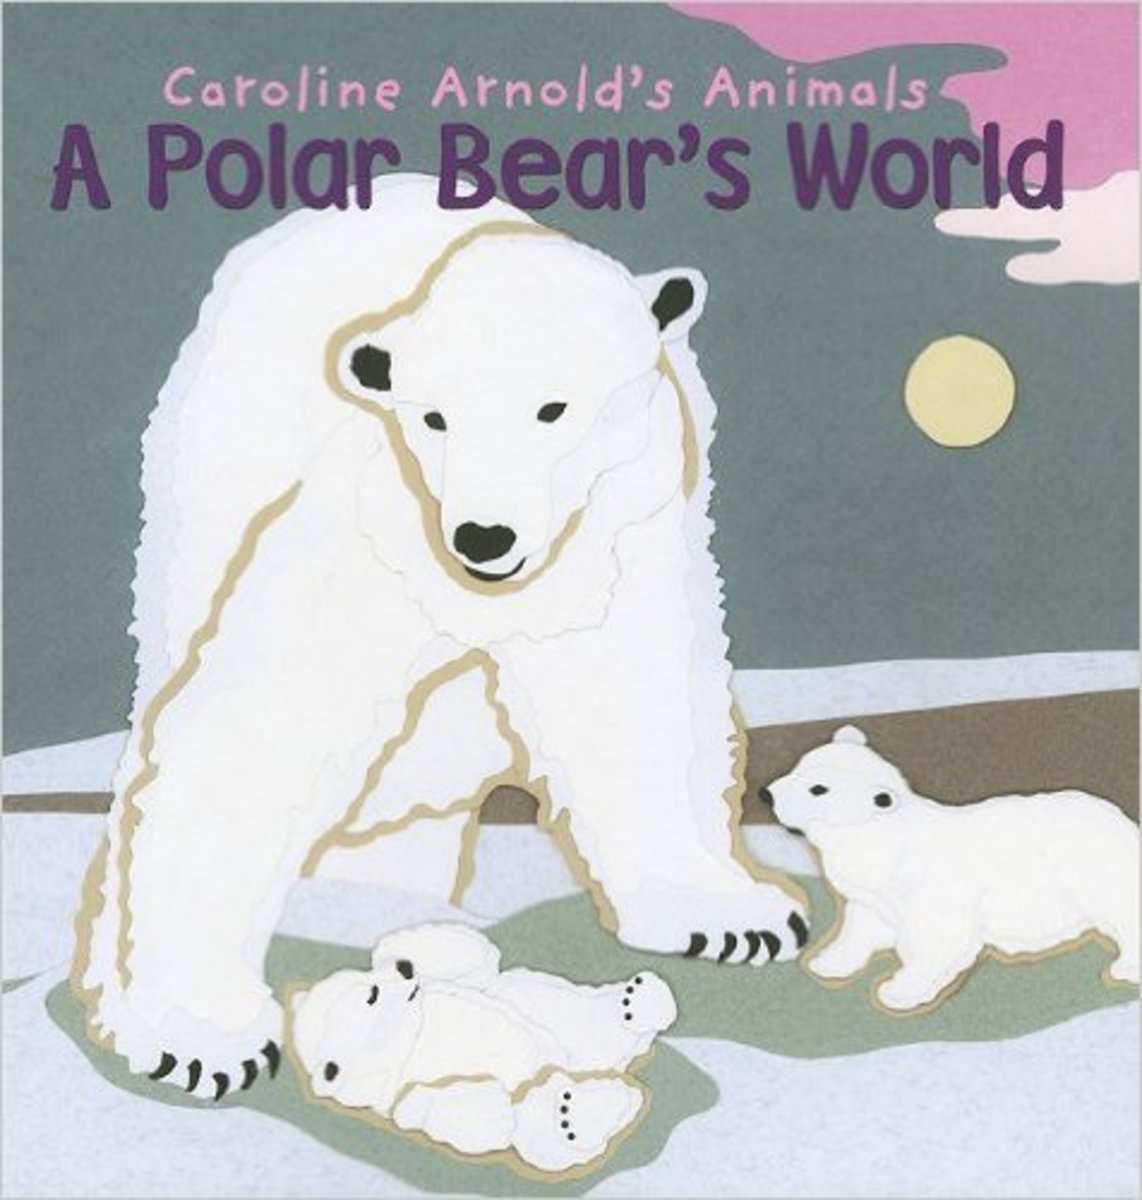 A Polar Bear's World (Caroline Arnold's Animals) by Caroline Arnold - Image is from amazon.com